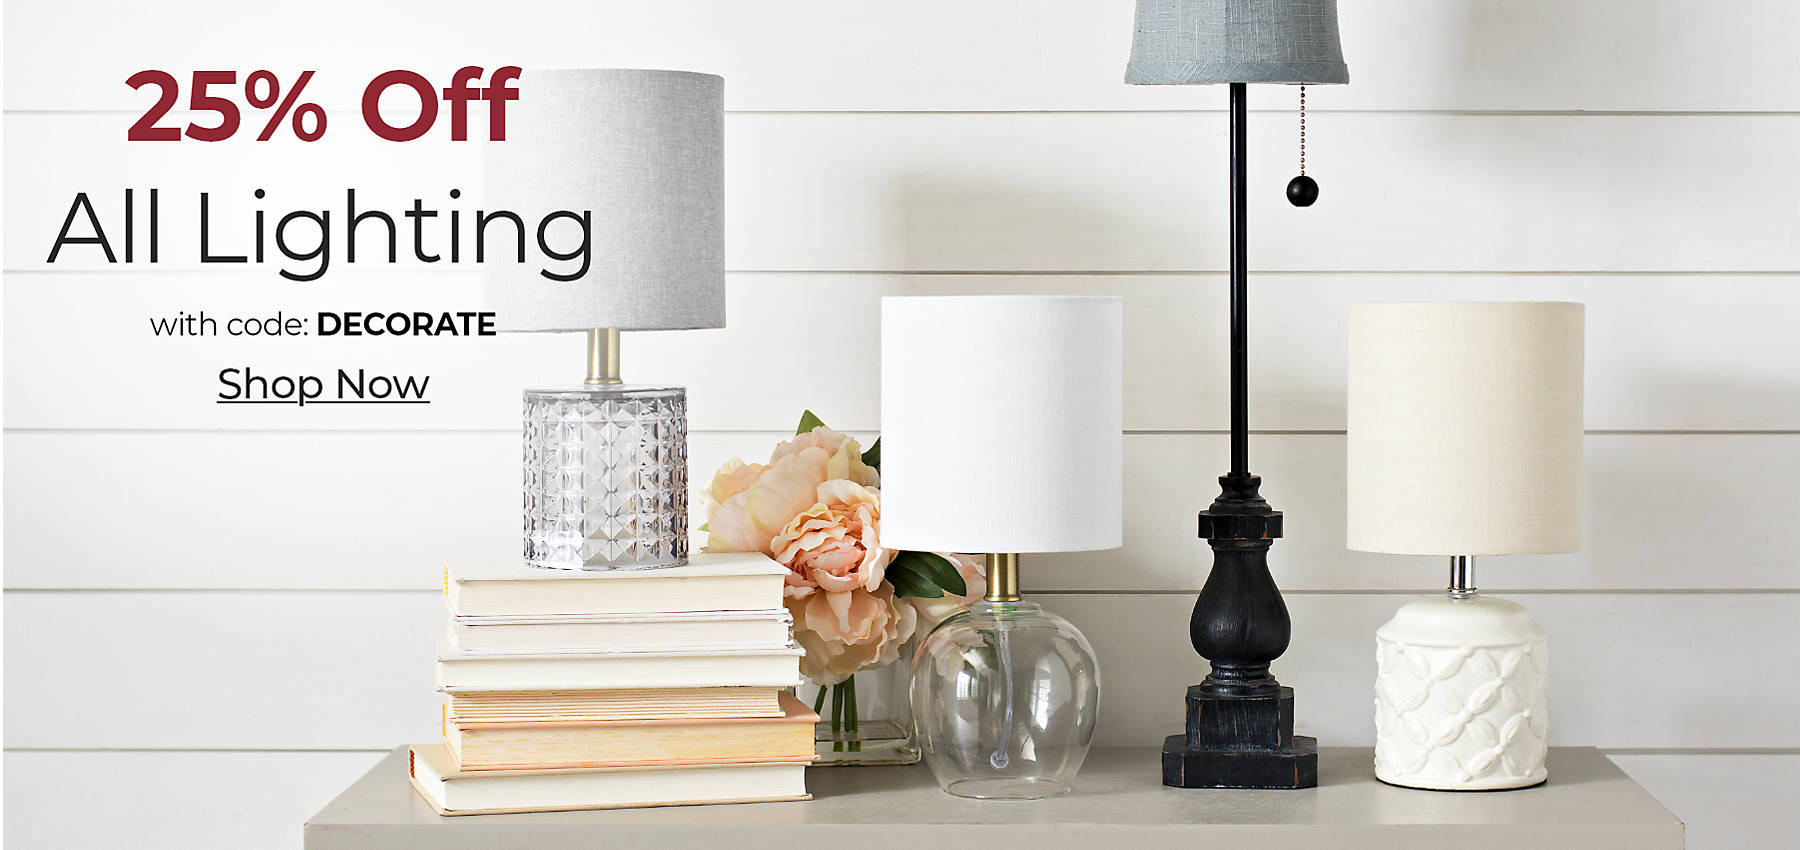 All Lighting 25% off with code DECORATE